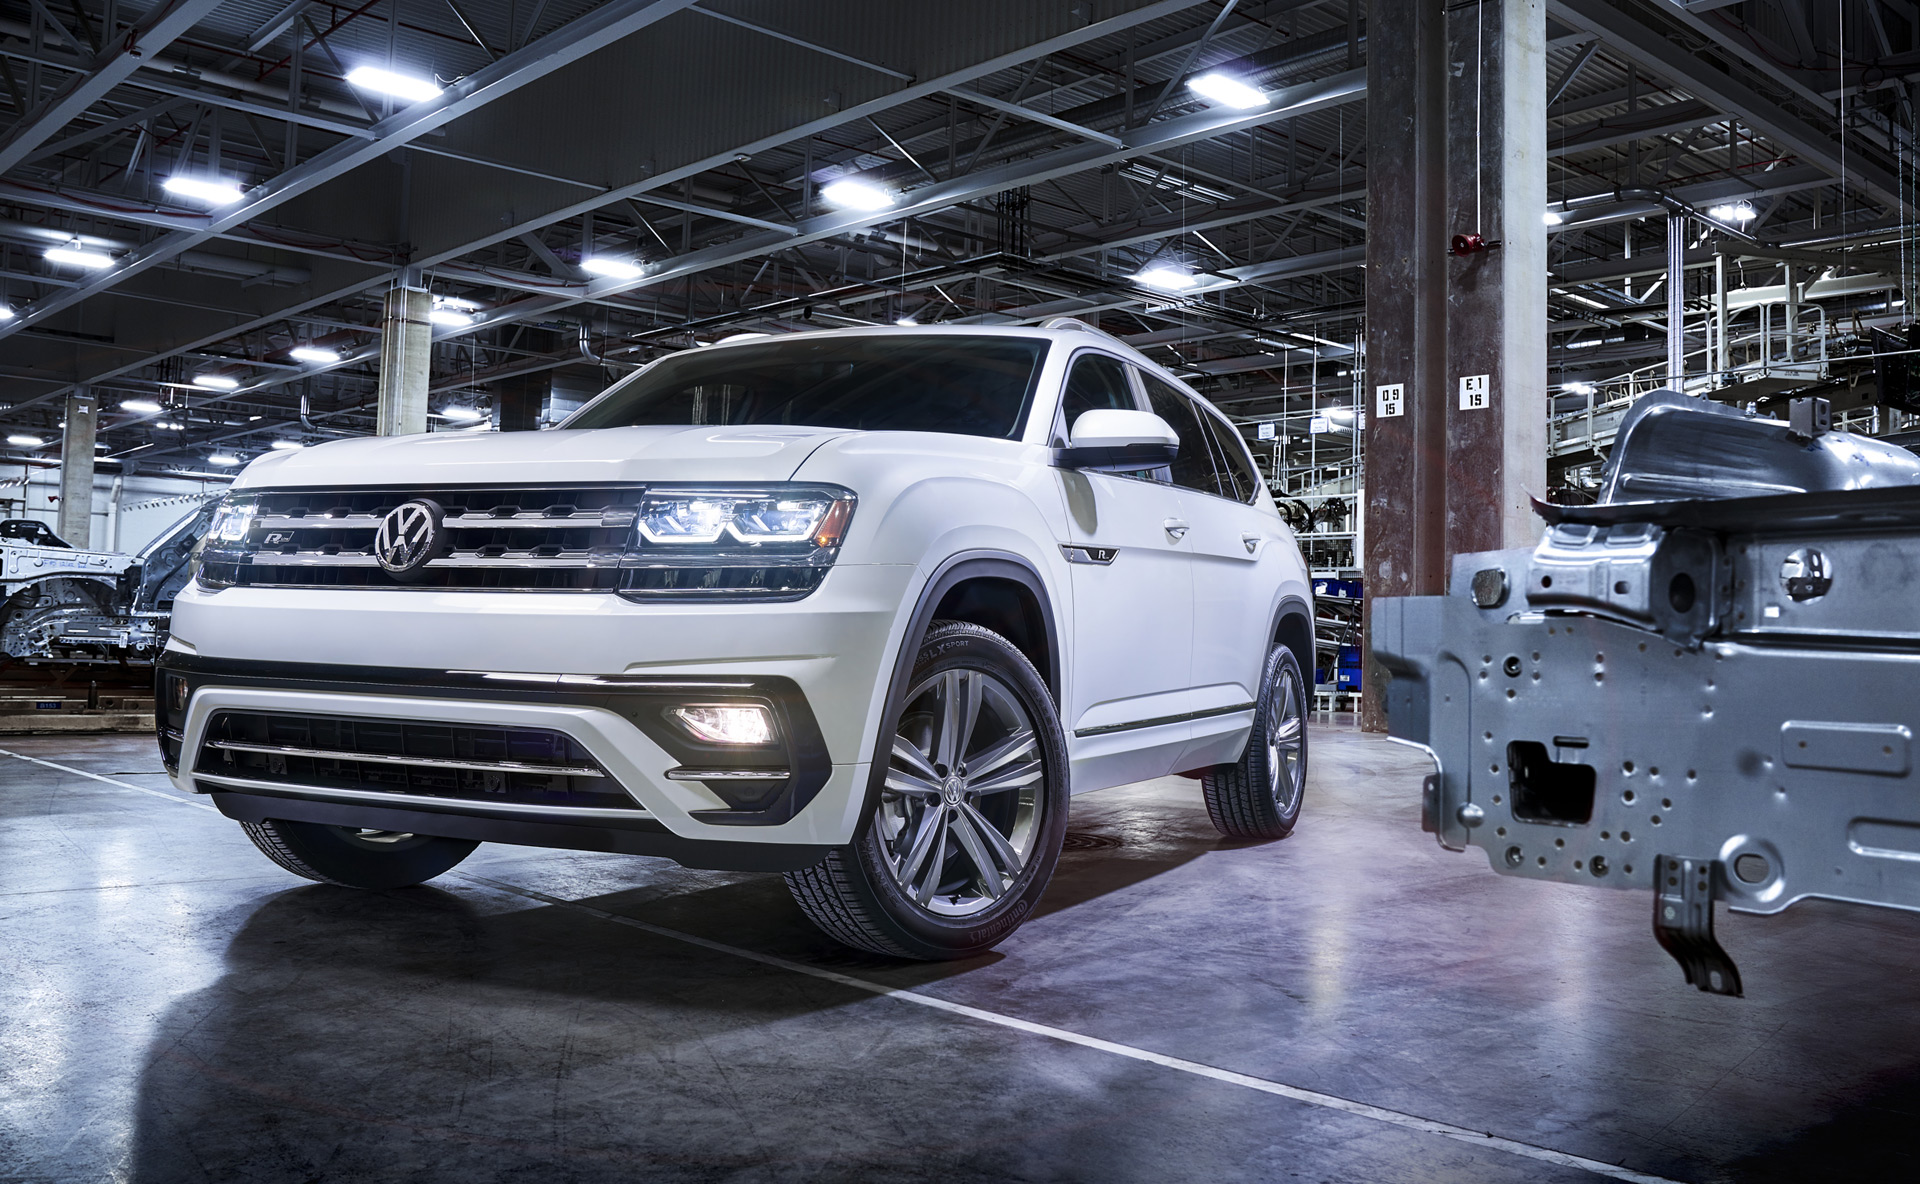 Used Cars Jacksonville >> 2018 Volkswagen Atlas gets sporty R-Line treatment